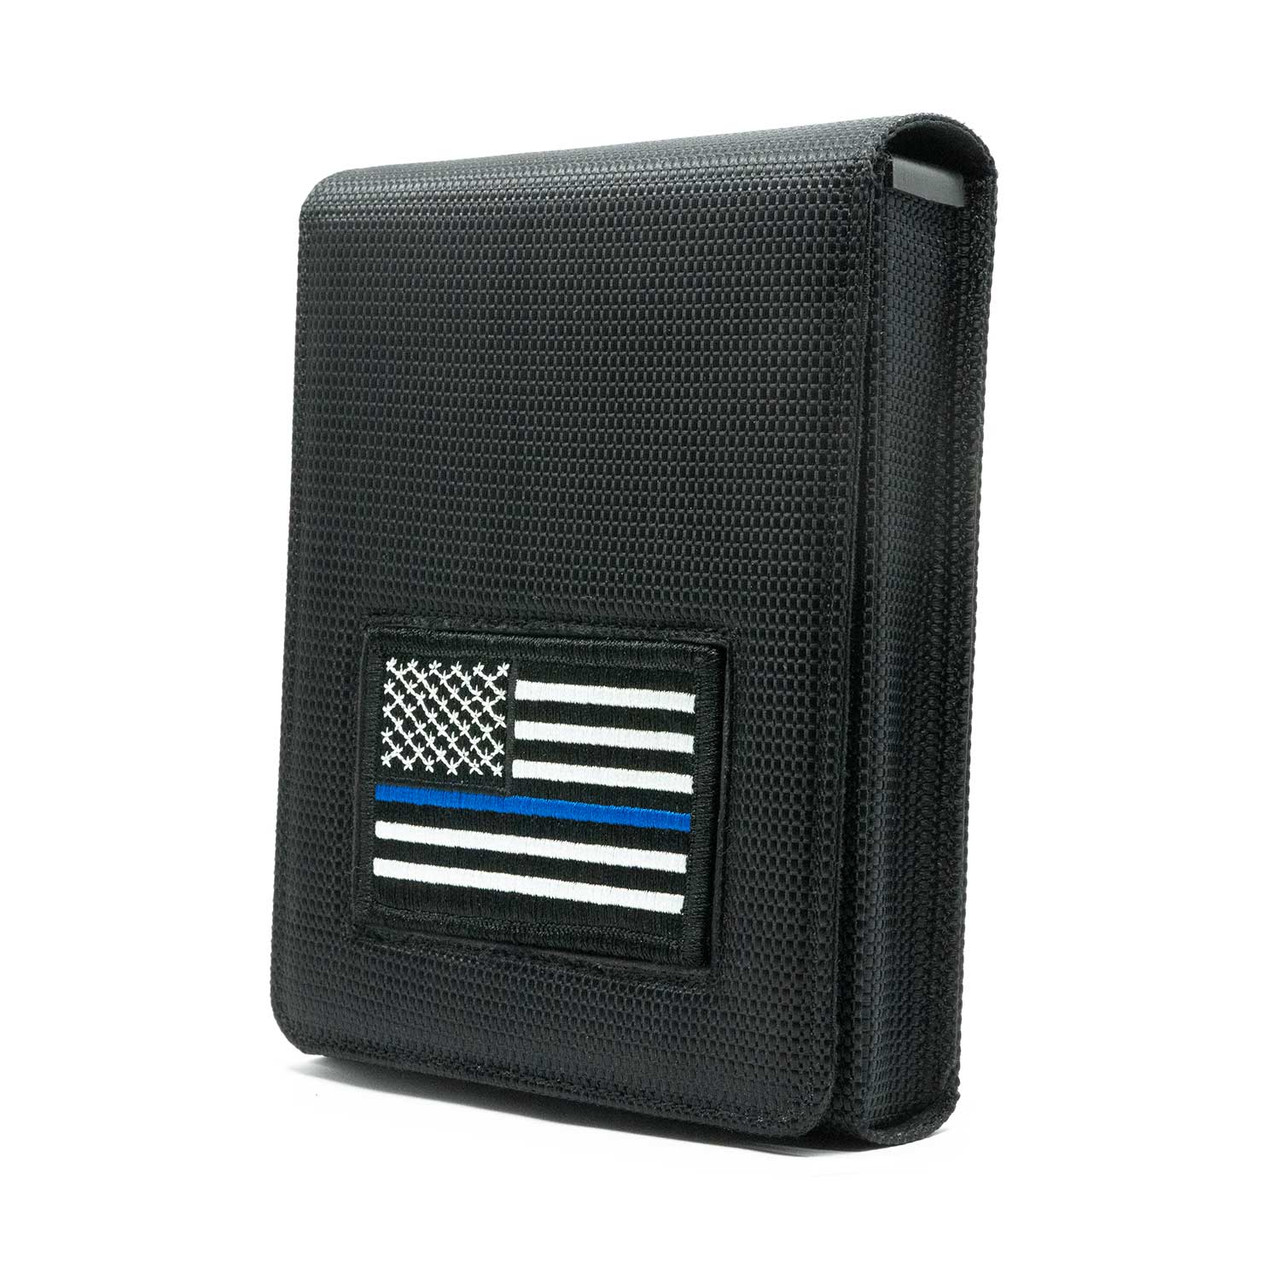 Walther PPK/S Thin Blue Line Holster